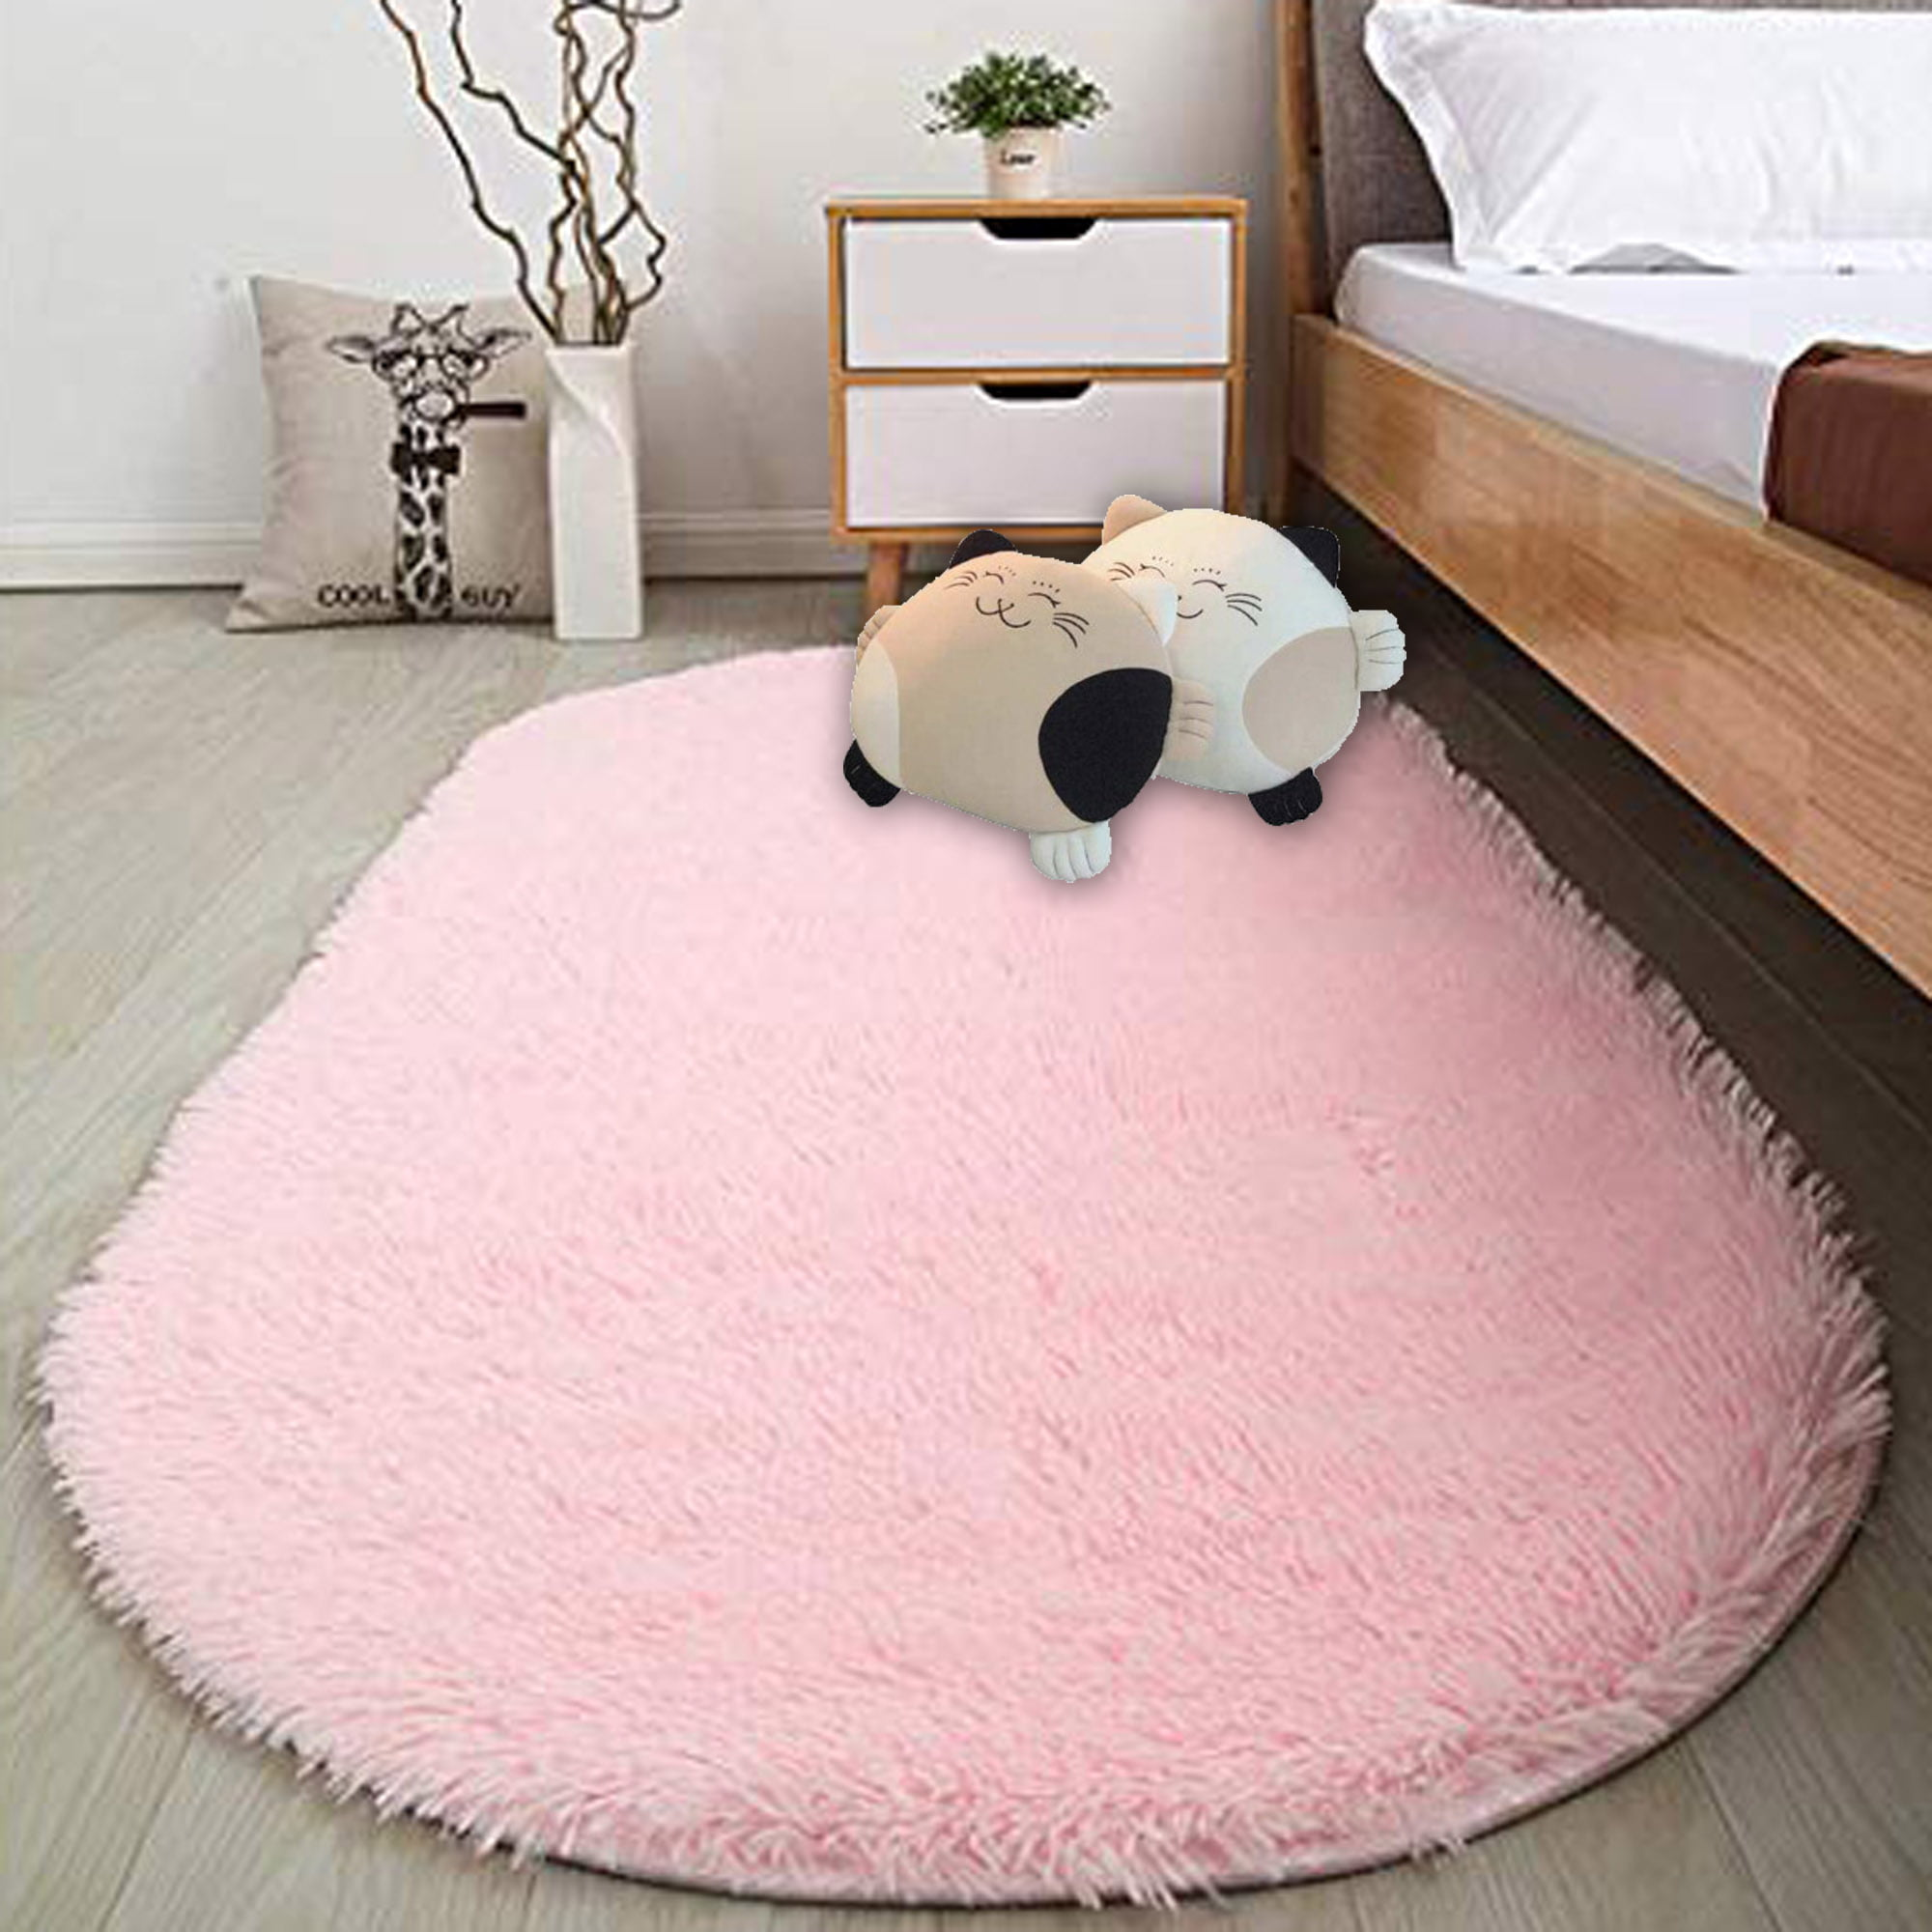 80 X 165cm Fluffy Area Rugs For